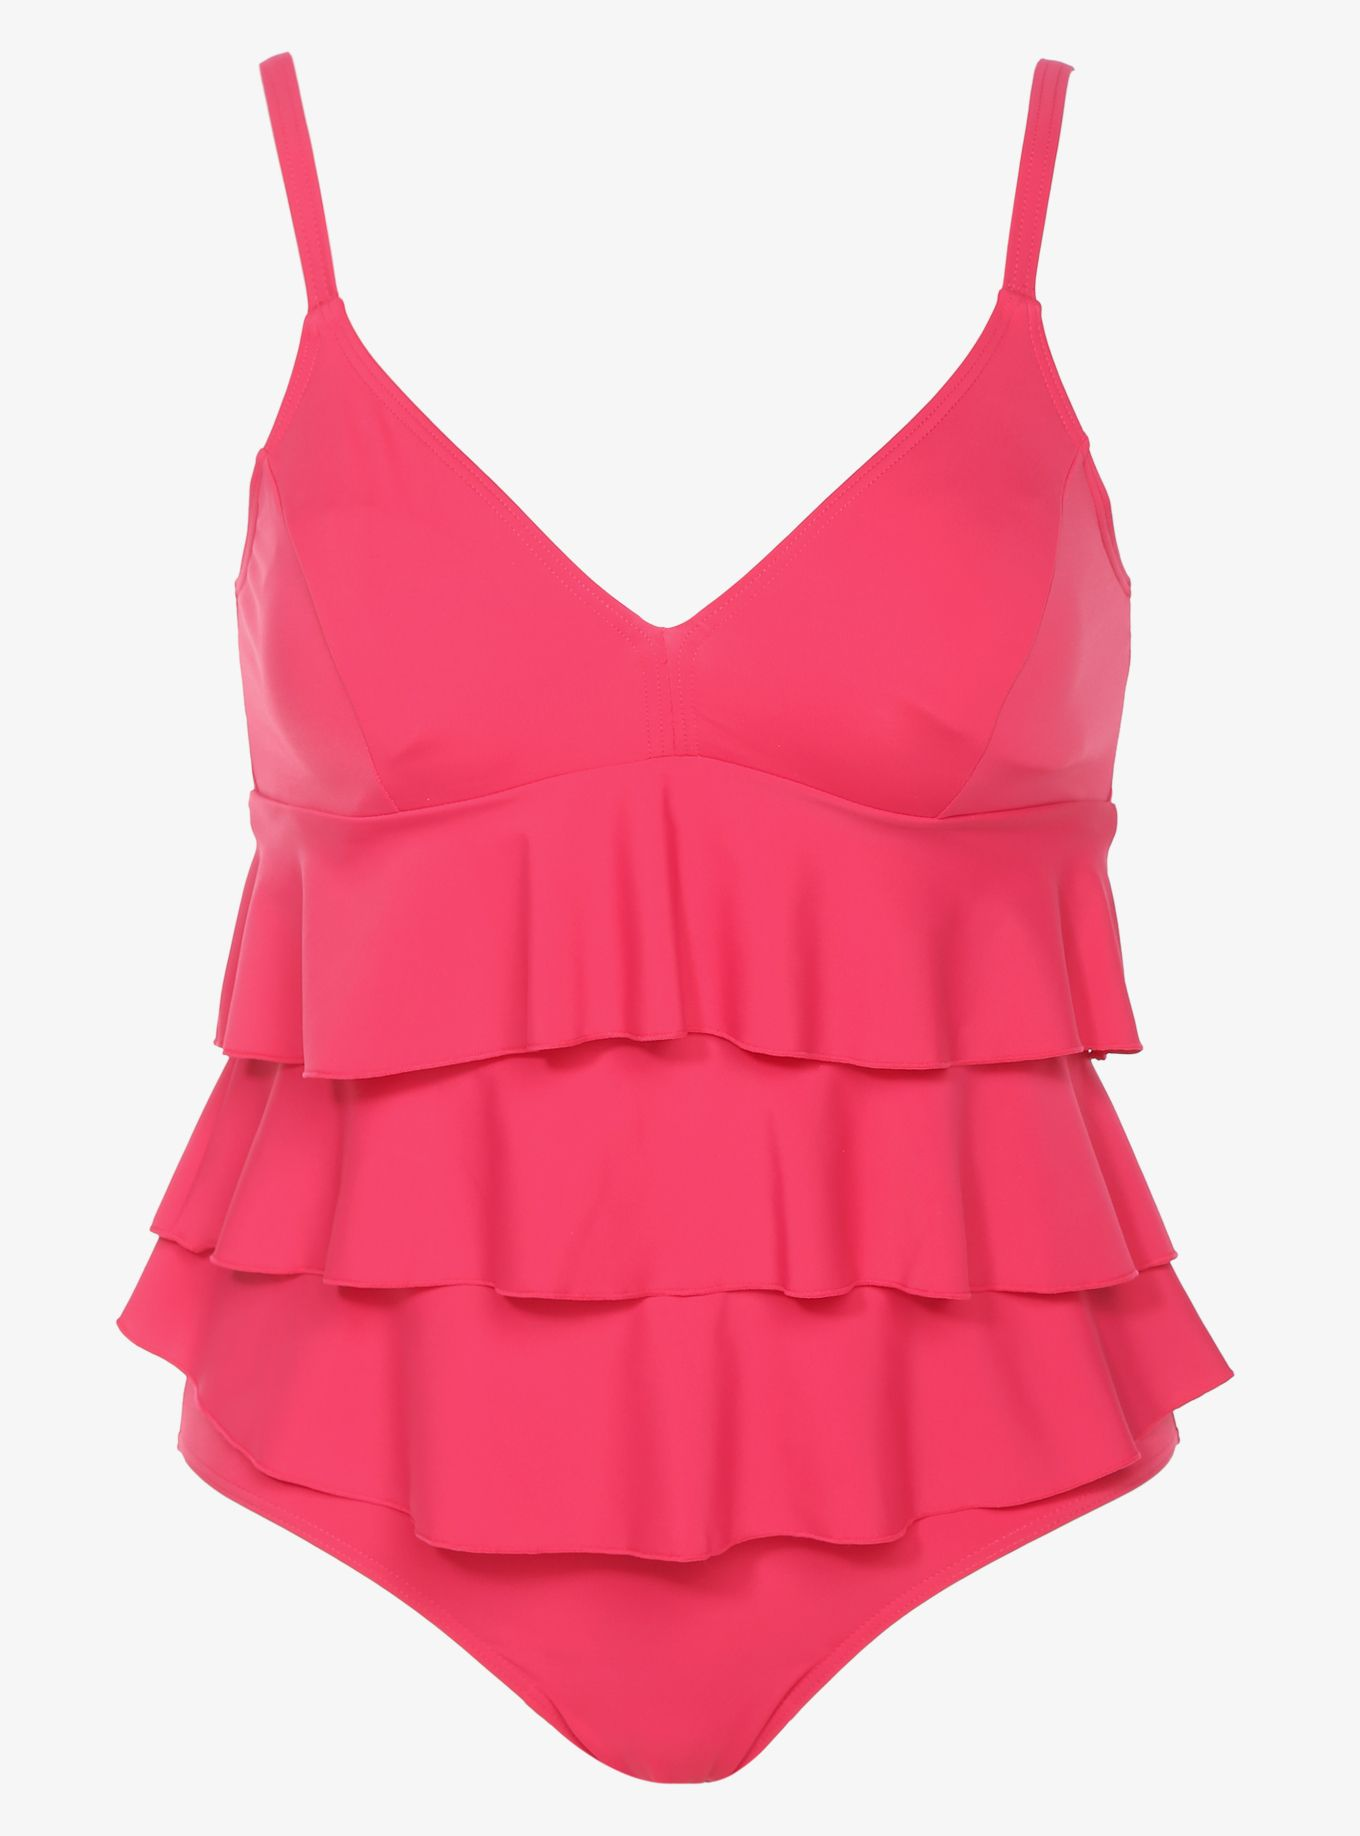 Internet exclusive! This swim set is designed to give you a perfect fit: tiered ruffles flatter and flirt, while soft cups with an elastic band underneath give you the support you want. Includes a matching bikini bottom.